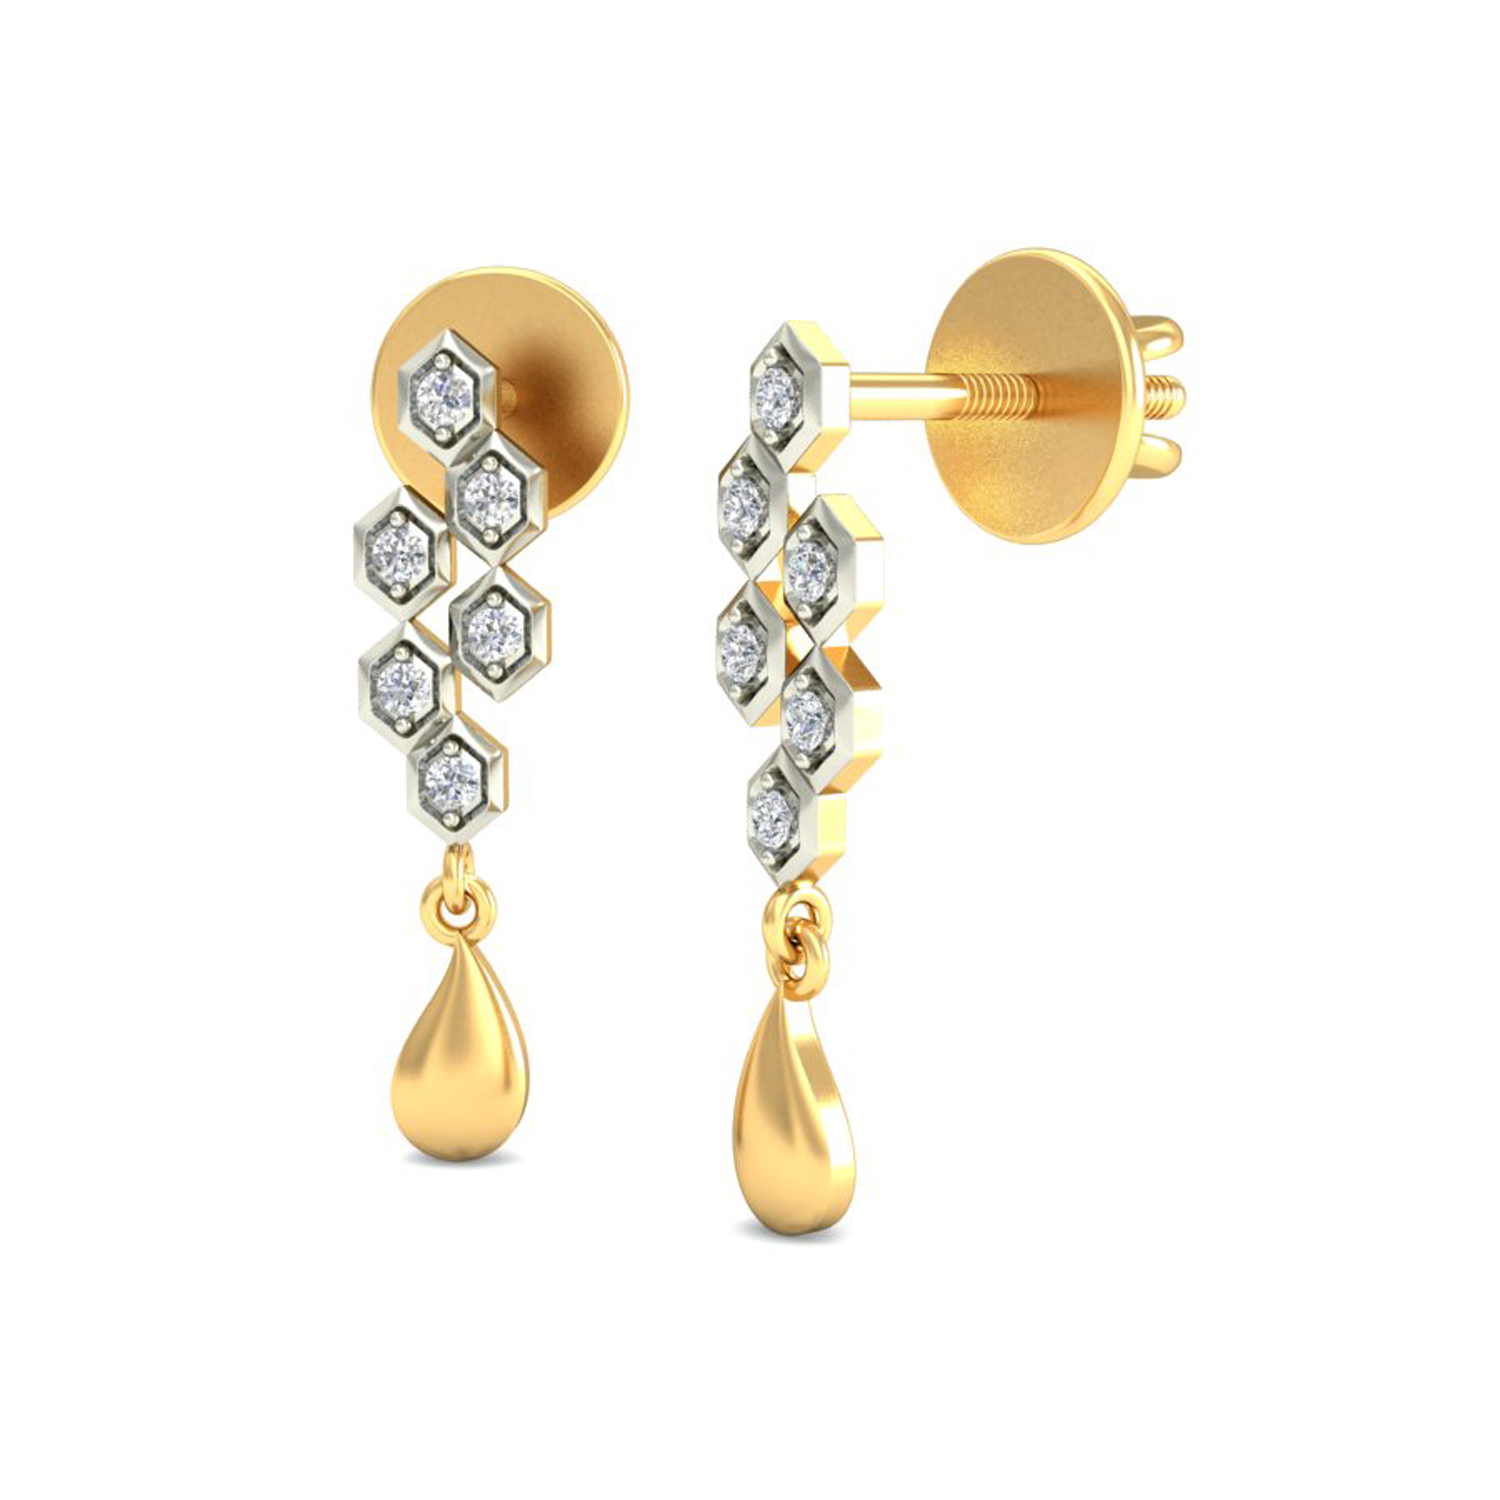 jewelry over earcuff earrings pearl yberc plated gold zoom indian fof detail m roll in to designer image